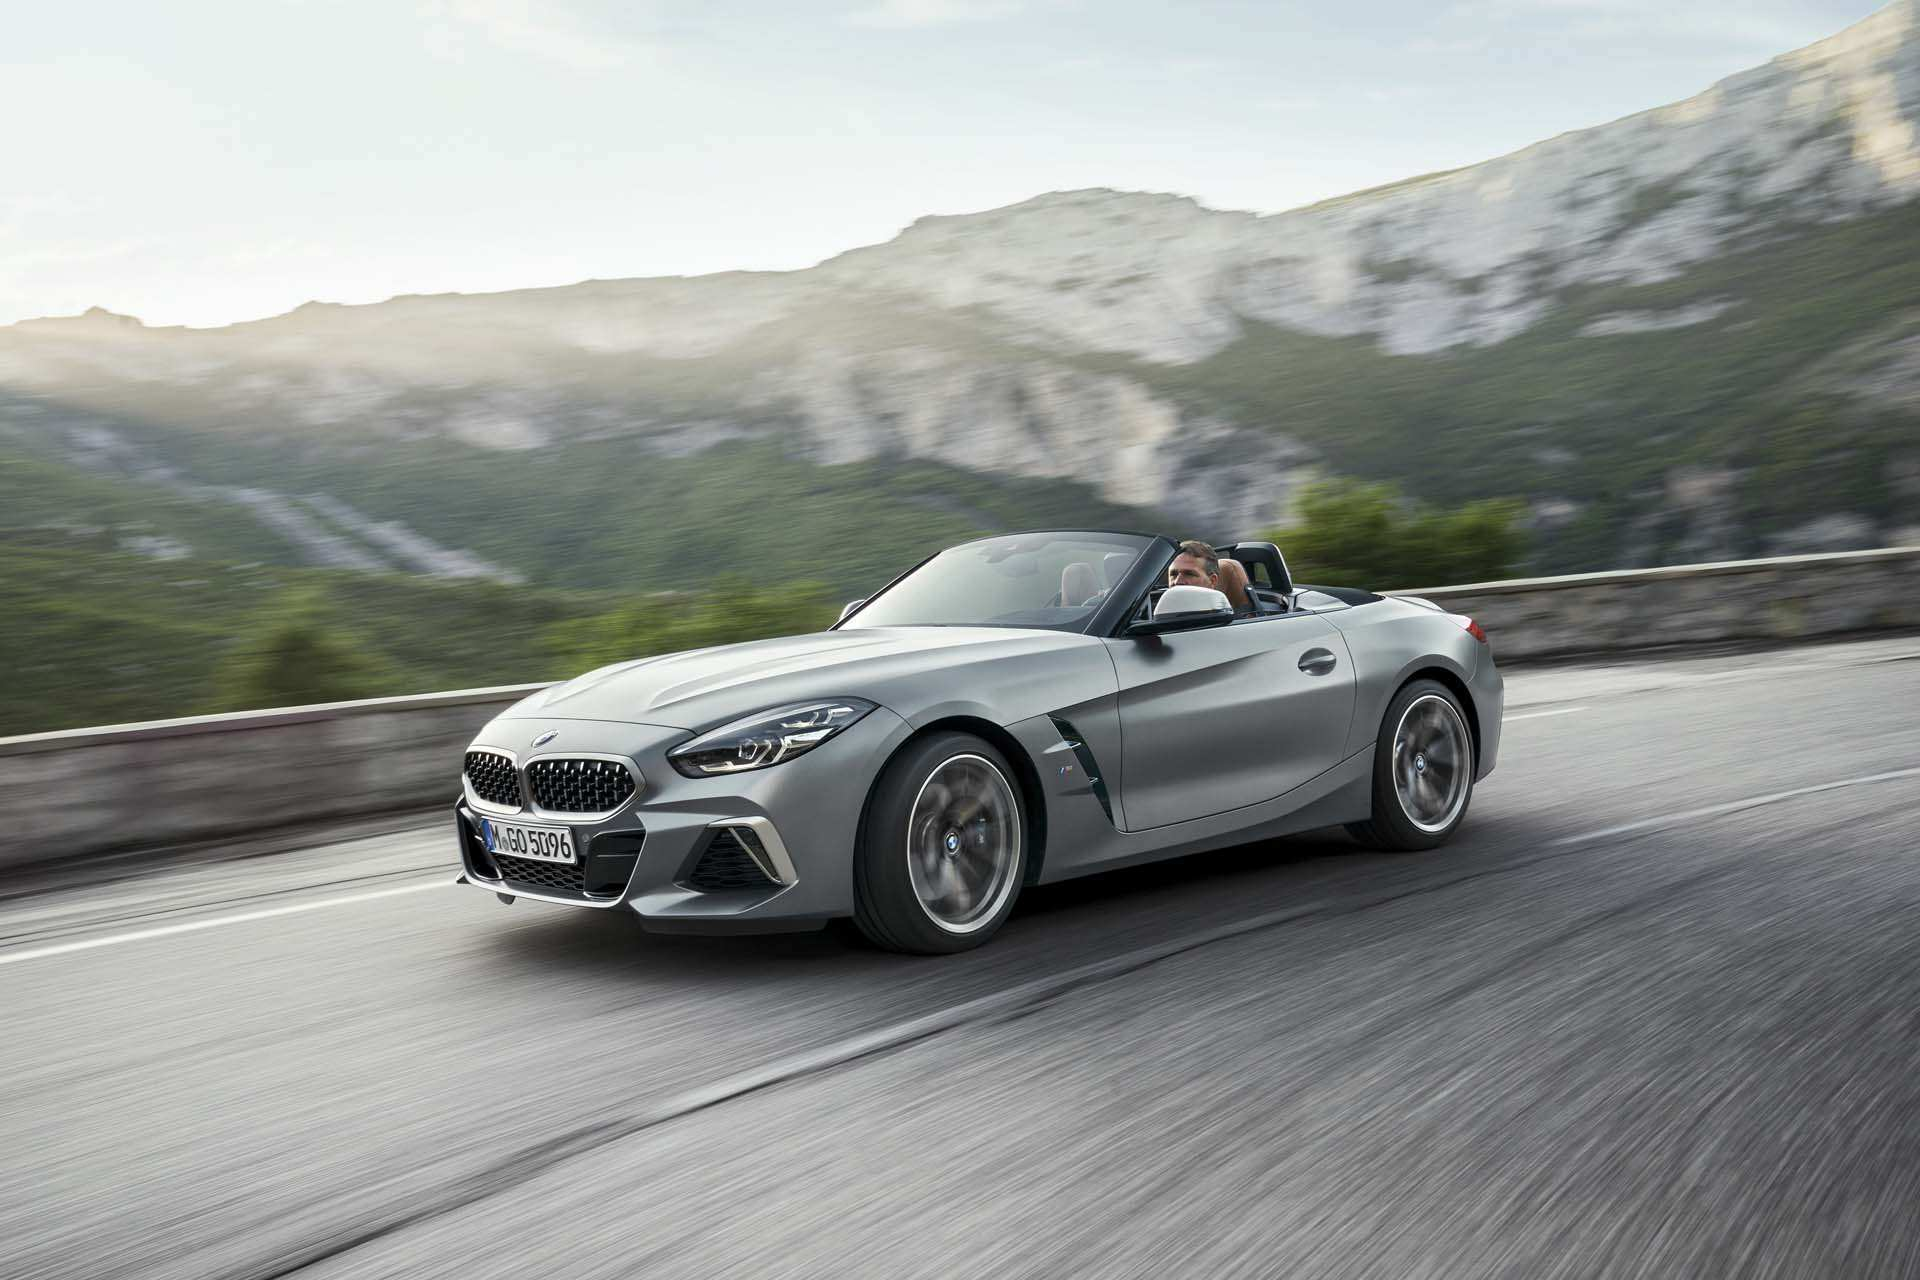 89 Best Review The Bmw Z4 2019 Engine First Drive Interior for The Bmw Z4 2019 Engine First Drive